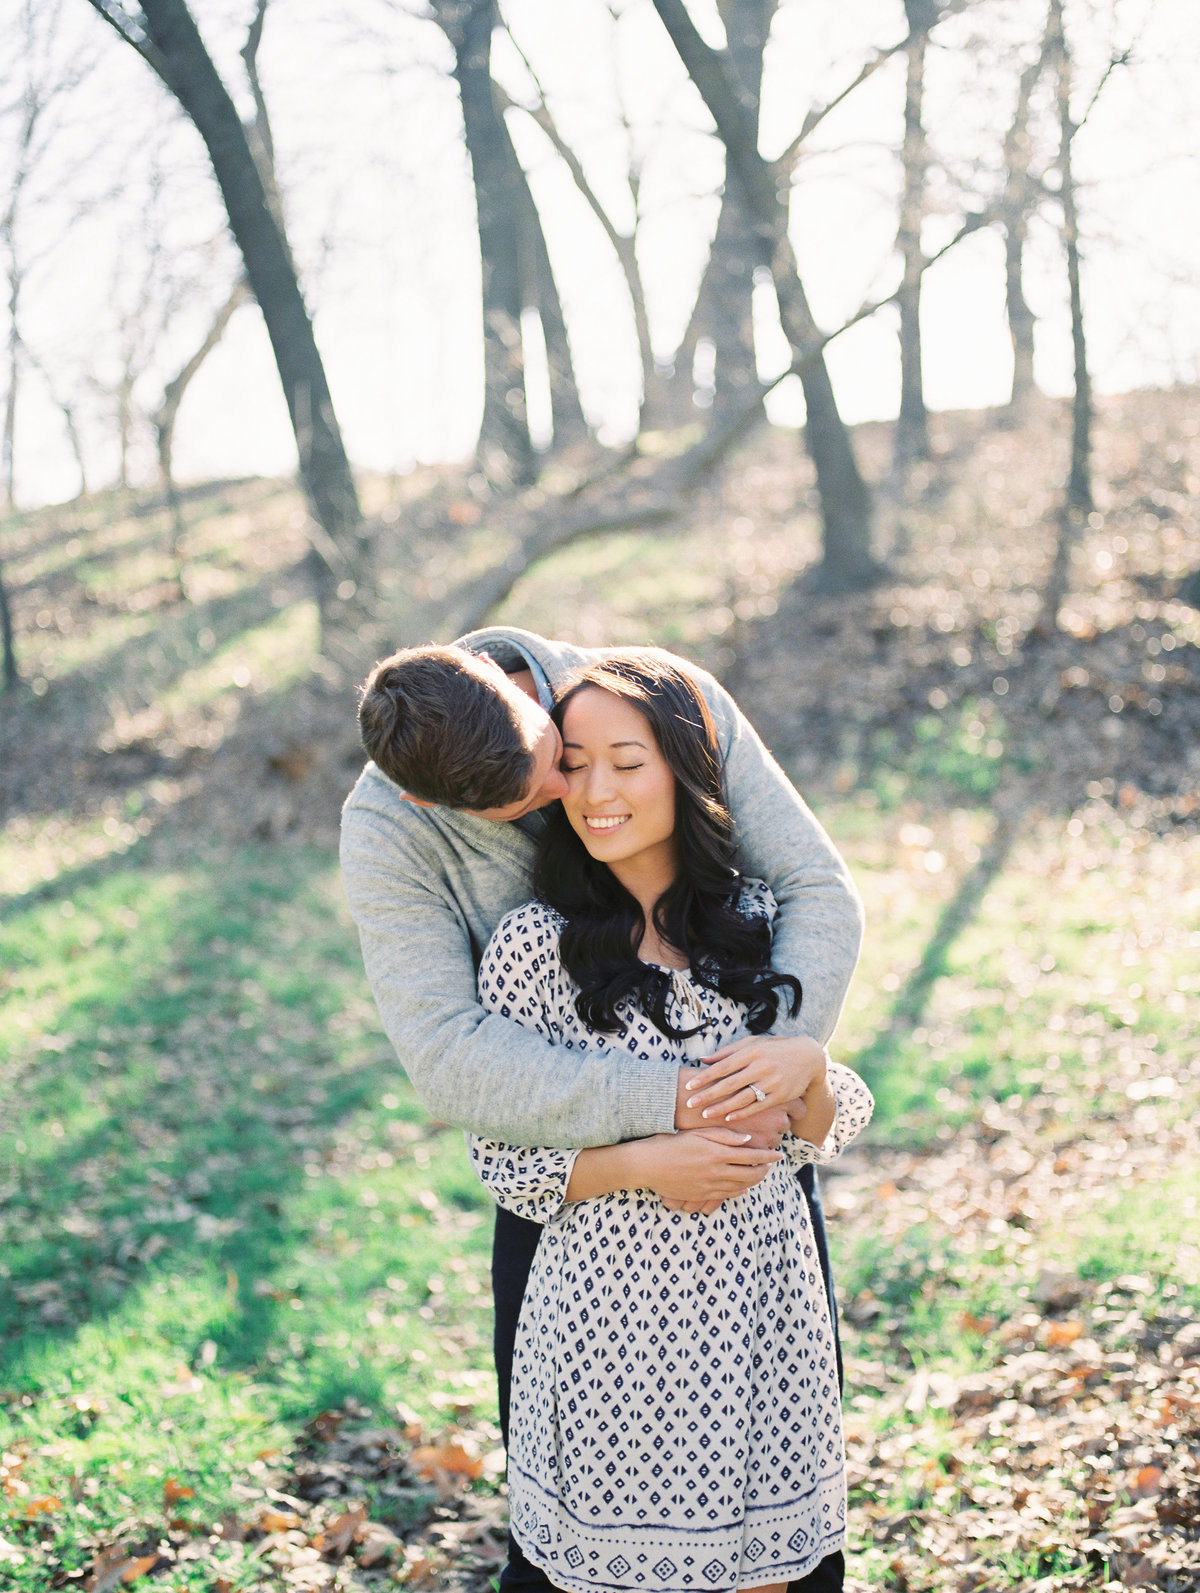 Jenny & Andrew Winter Engagement on Film  {Destination Film Wedding Photographer}  | Katie Schoepflin Photography15